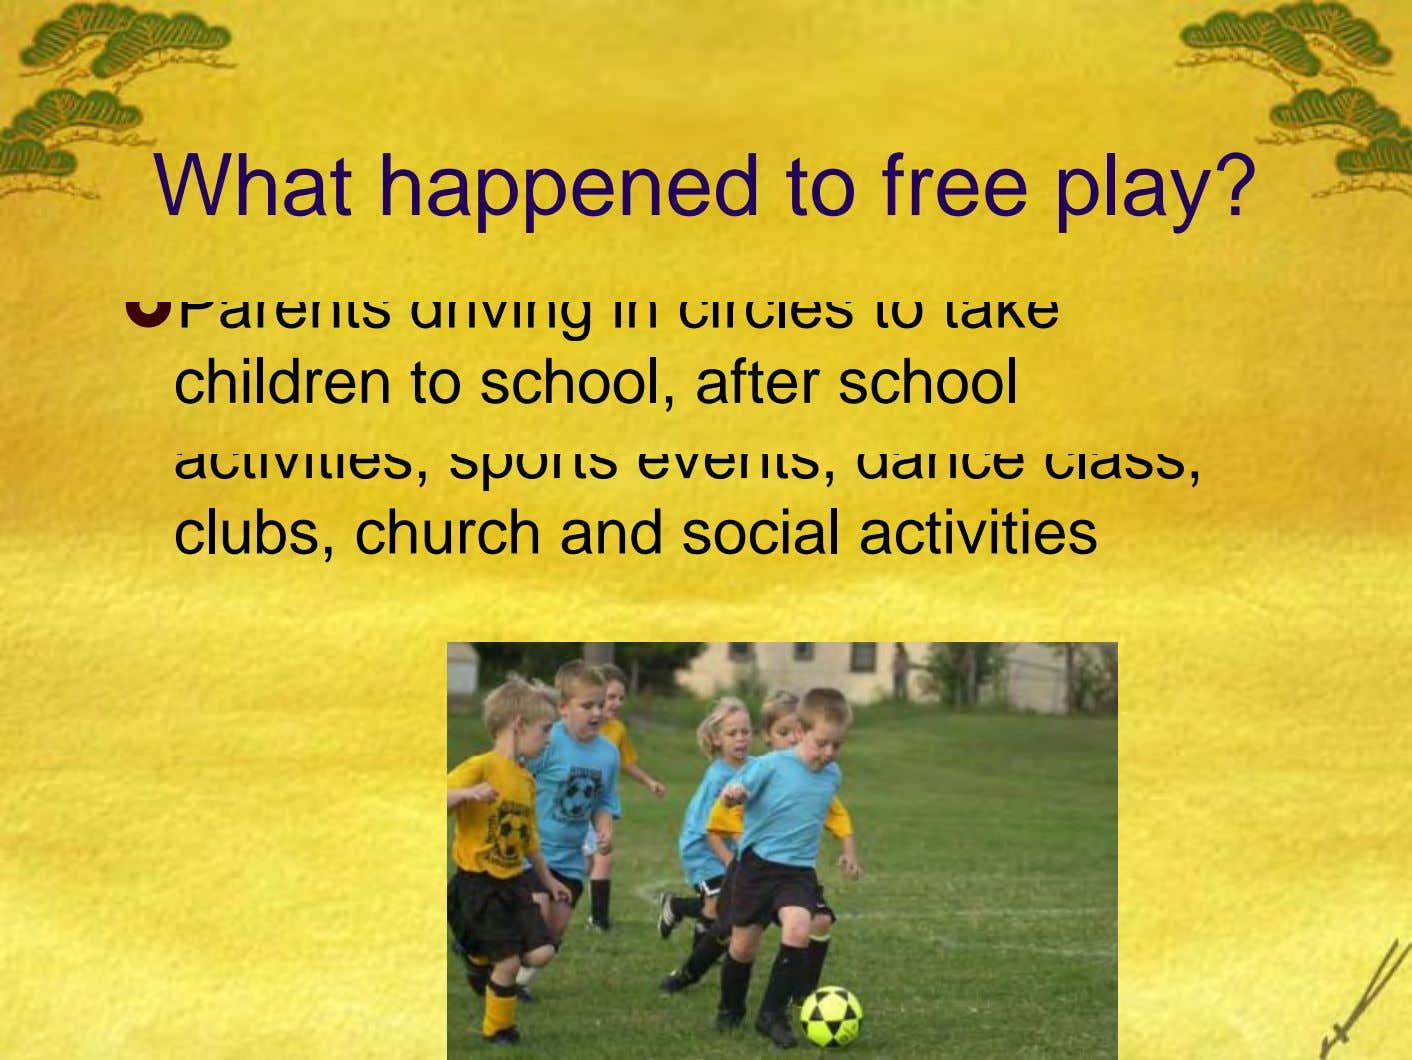 What happened to free play? Parents driving in circles to take children to school, after school